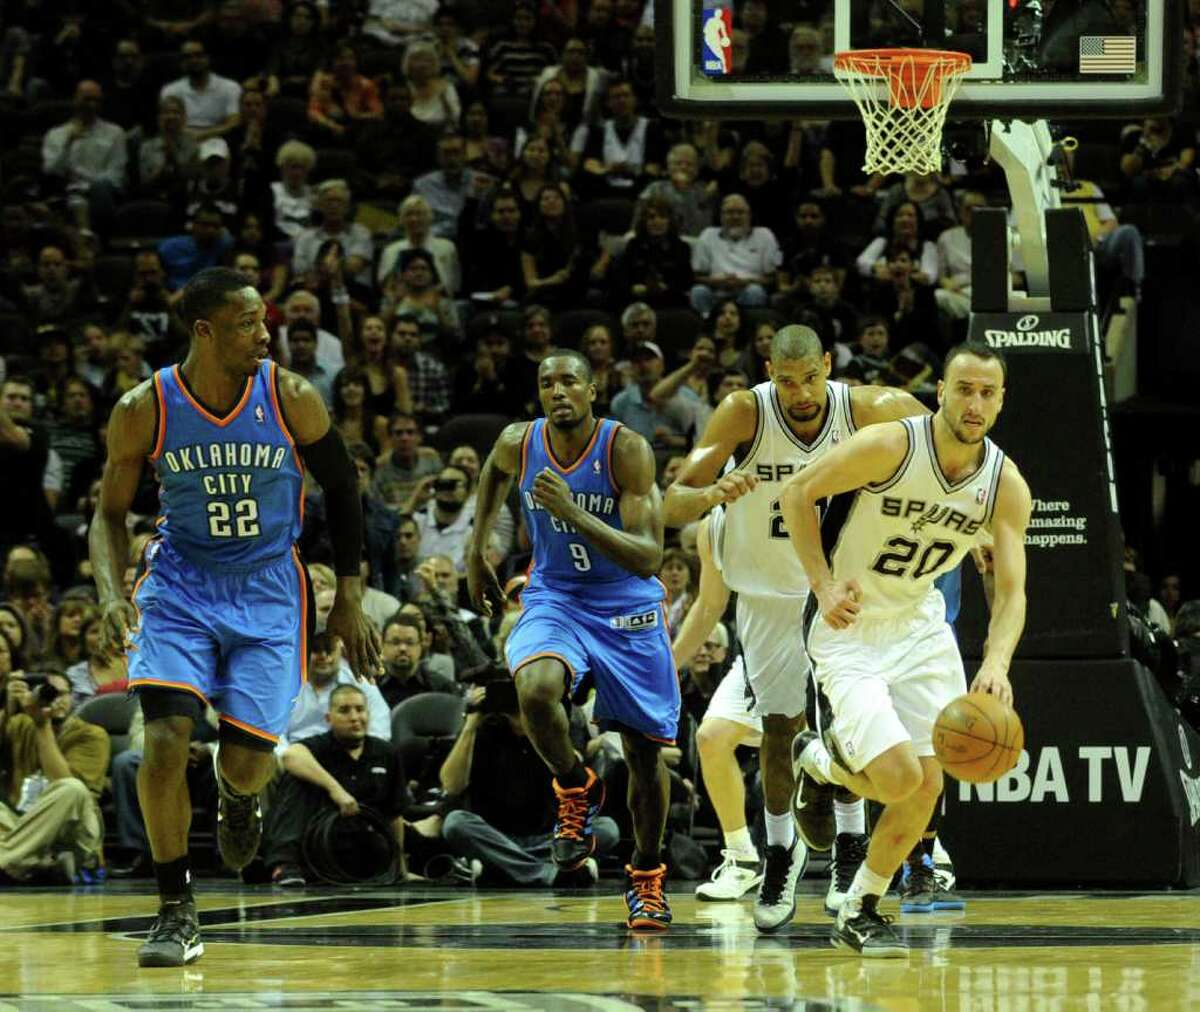 Manu Ginobili of the San Antonio Spurs (20) brings the ball down the court as teammate Tim Duncan and Jeff Green (22) and Serge Ibaka (9) of the Oklahoma City Thunder give chase during second-half NBA action at the AT&T Center on Wednesday, Feb. 23, 2011. BILLY CALZADA / gcalzada@express-news.net Oklahoma City Thunder at San Antonio Spurs